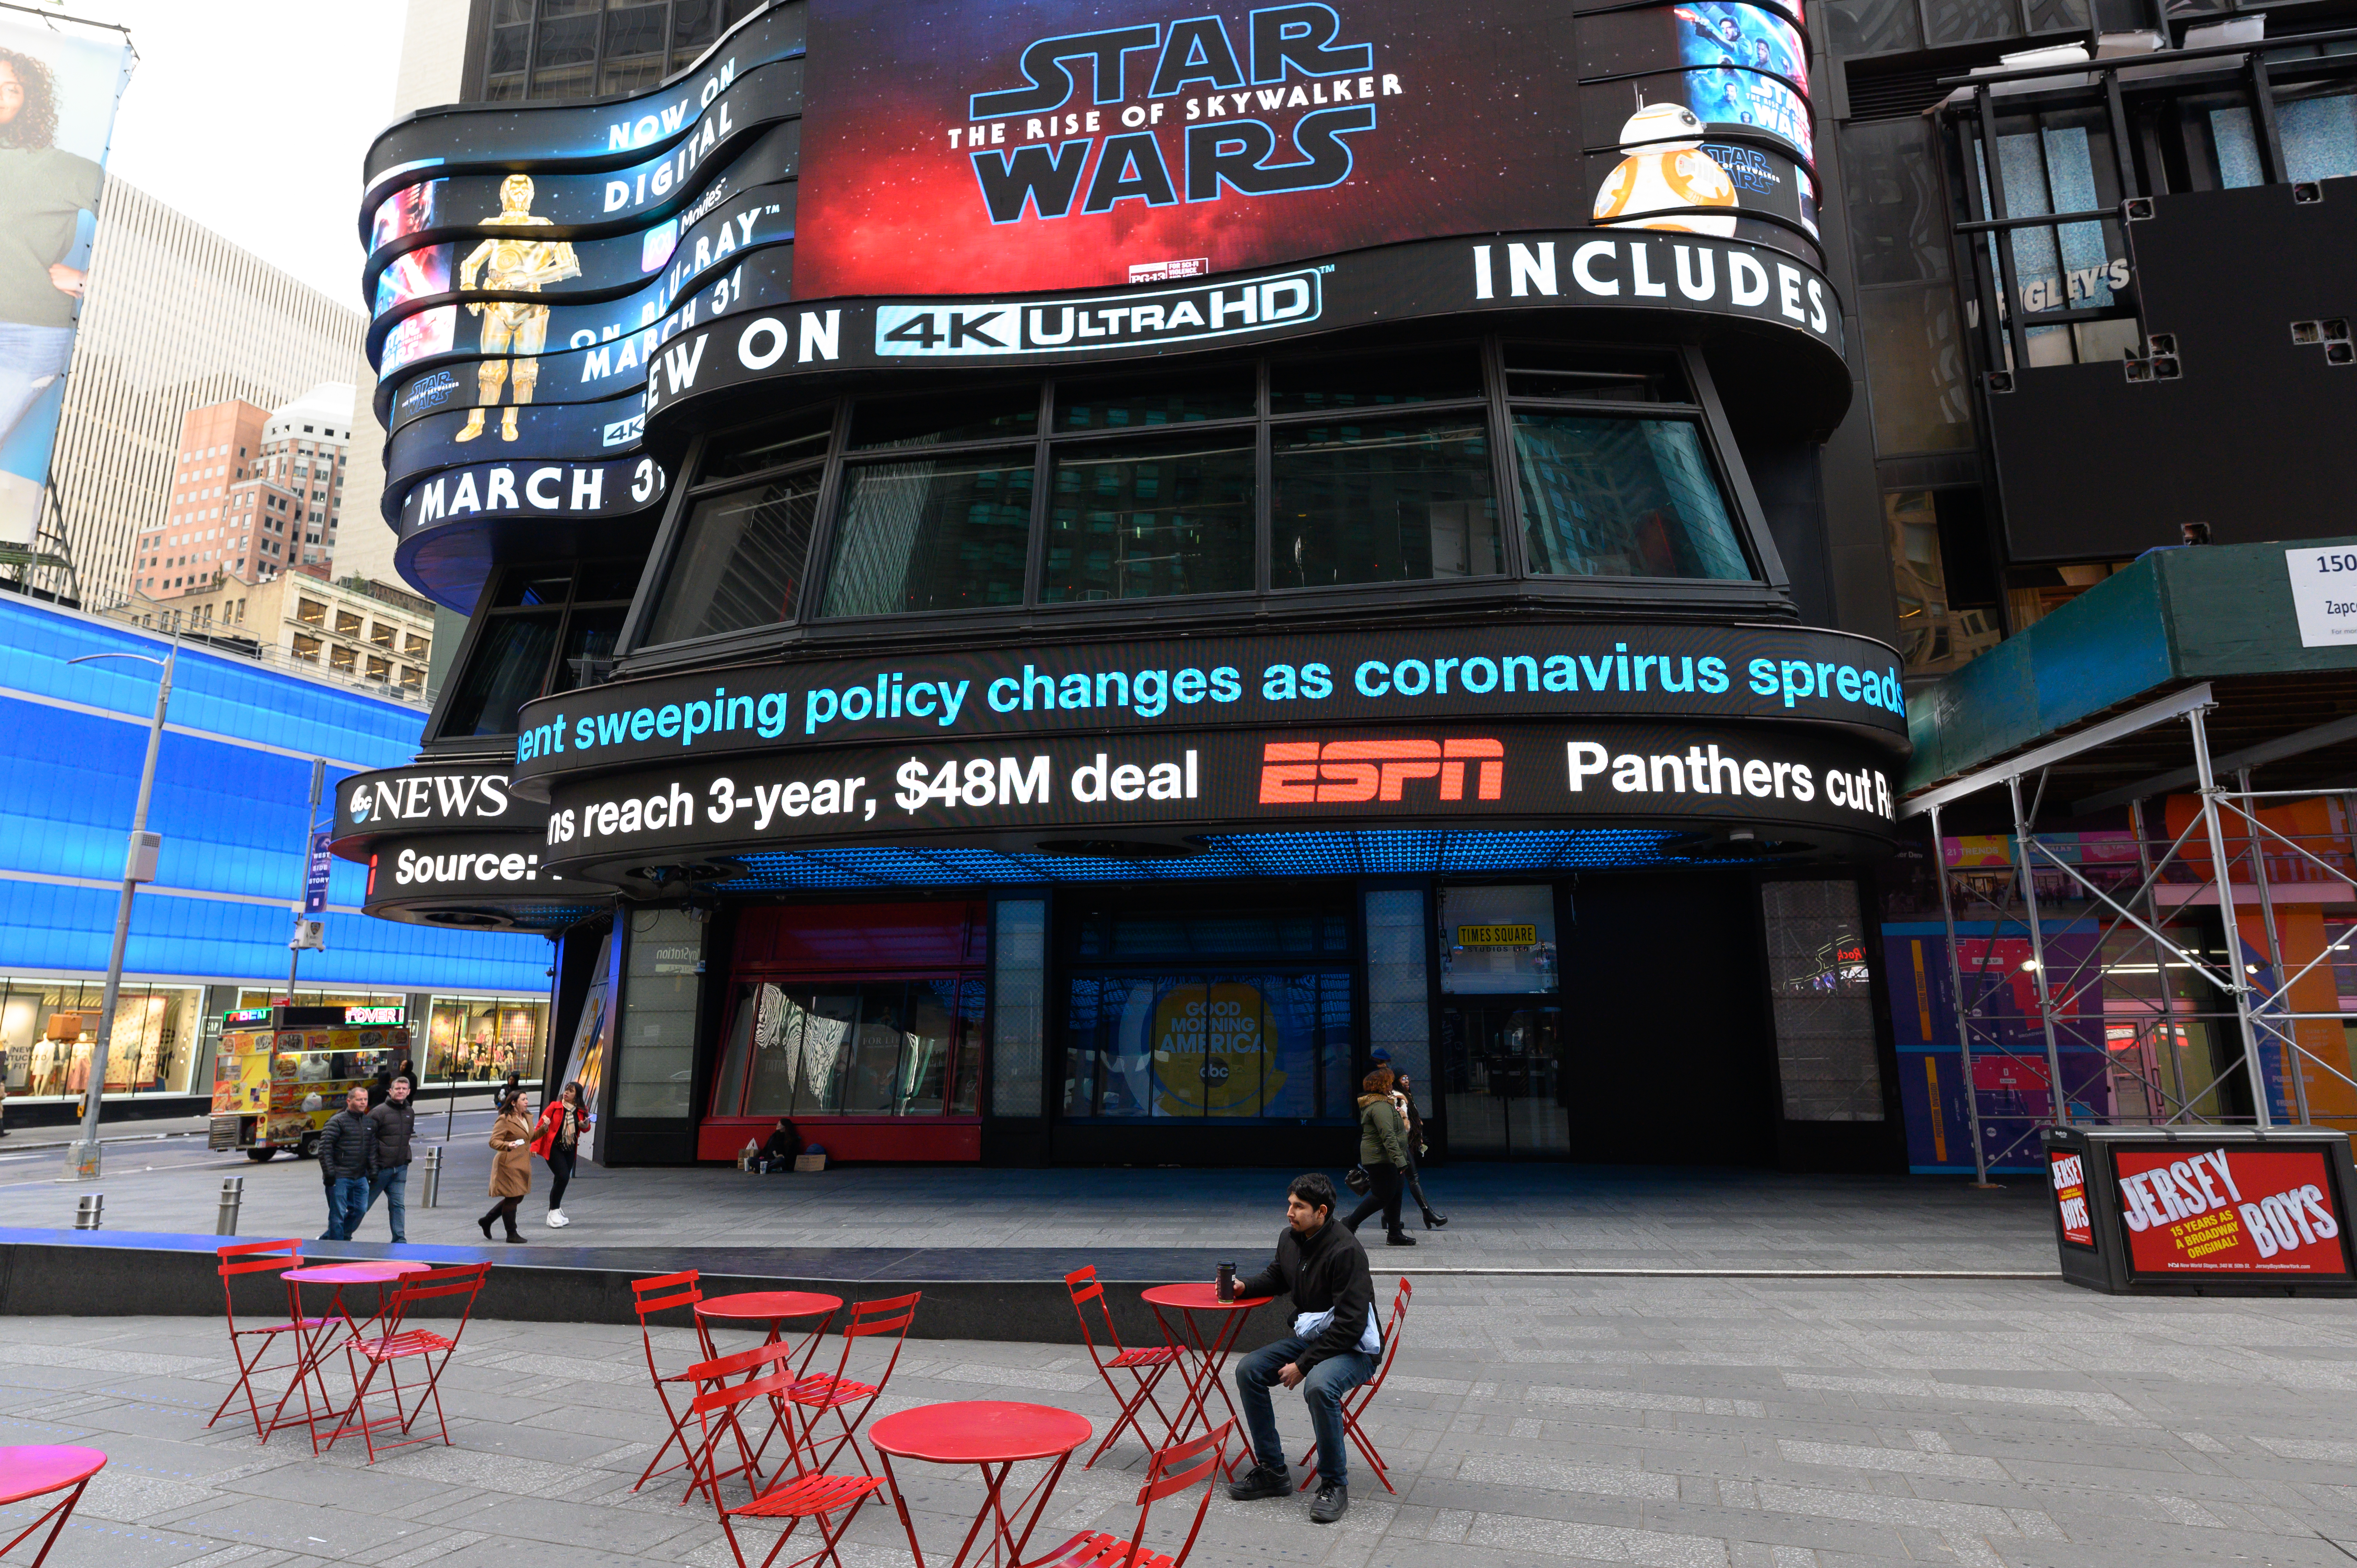 A man sits alone in a chair in front of some Times Square billboards on March 18, 2020.